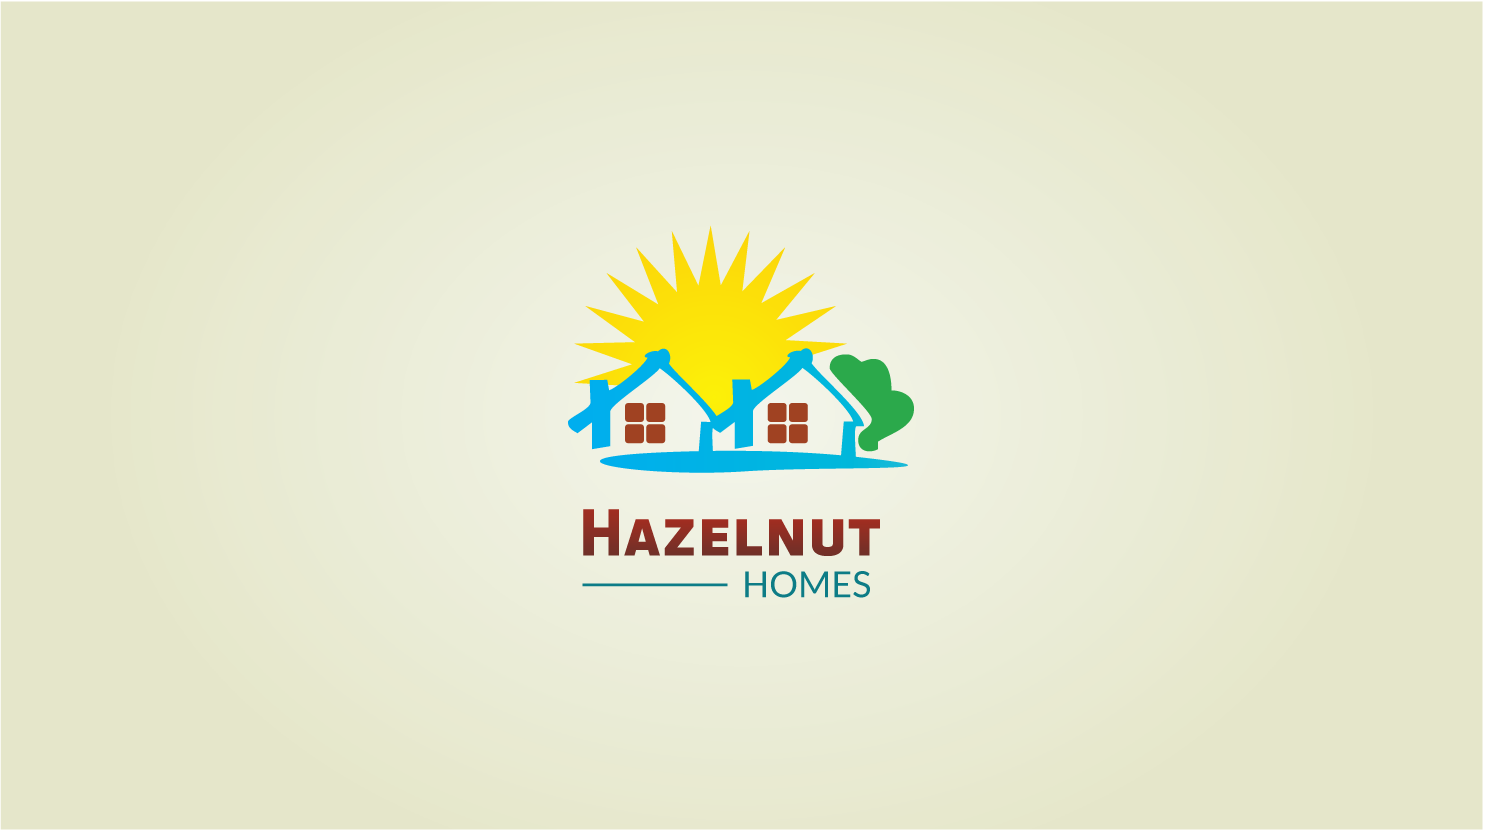 Logo Design by funkeekhan - Entry No. 72 in the Logo Design Contest Unique Logo Design Wanted for Hazelnut Homes.